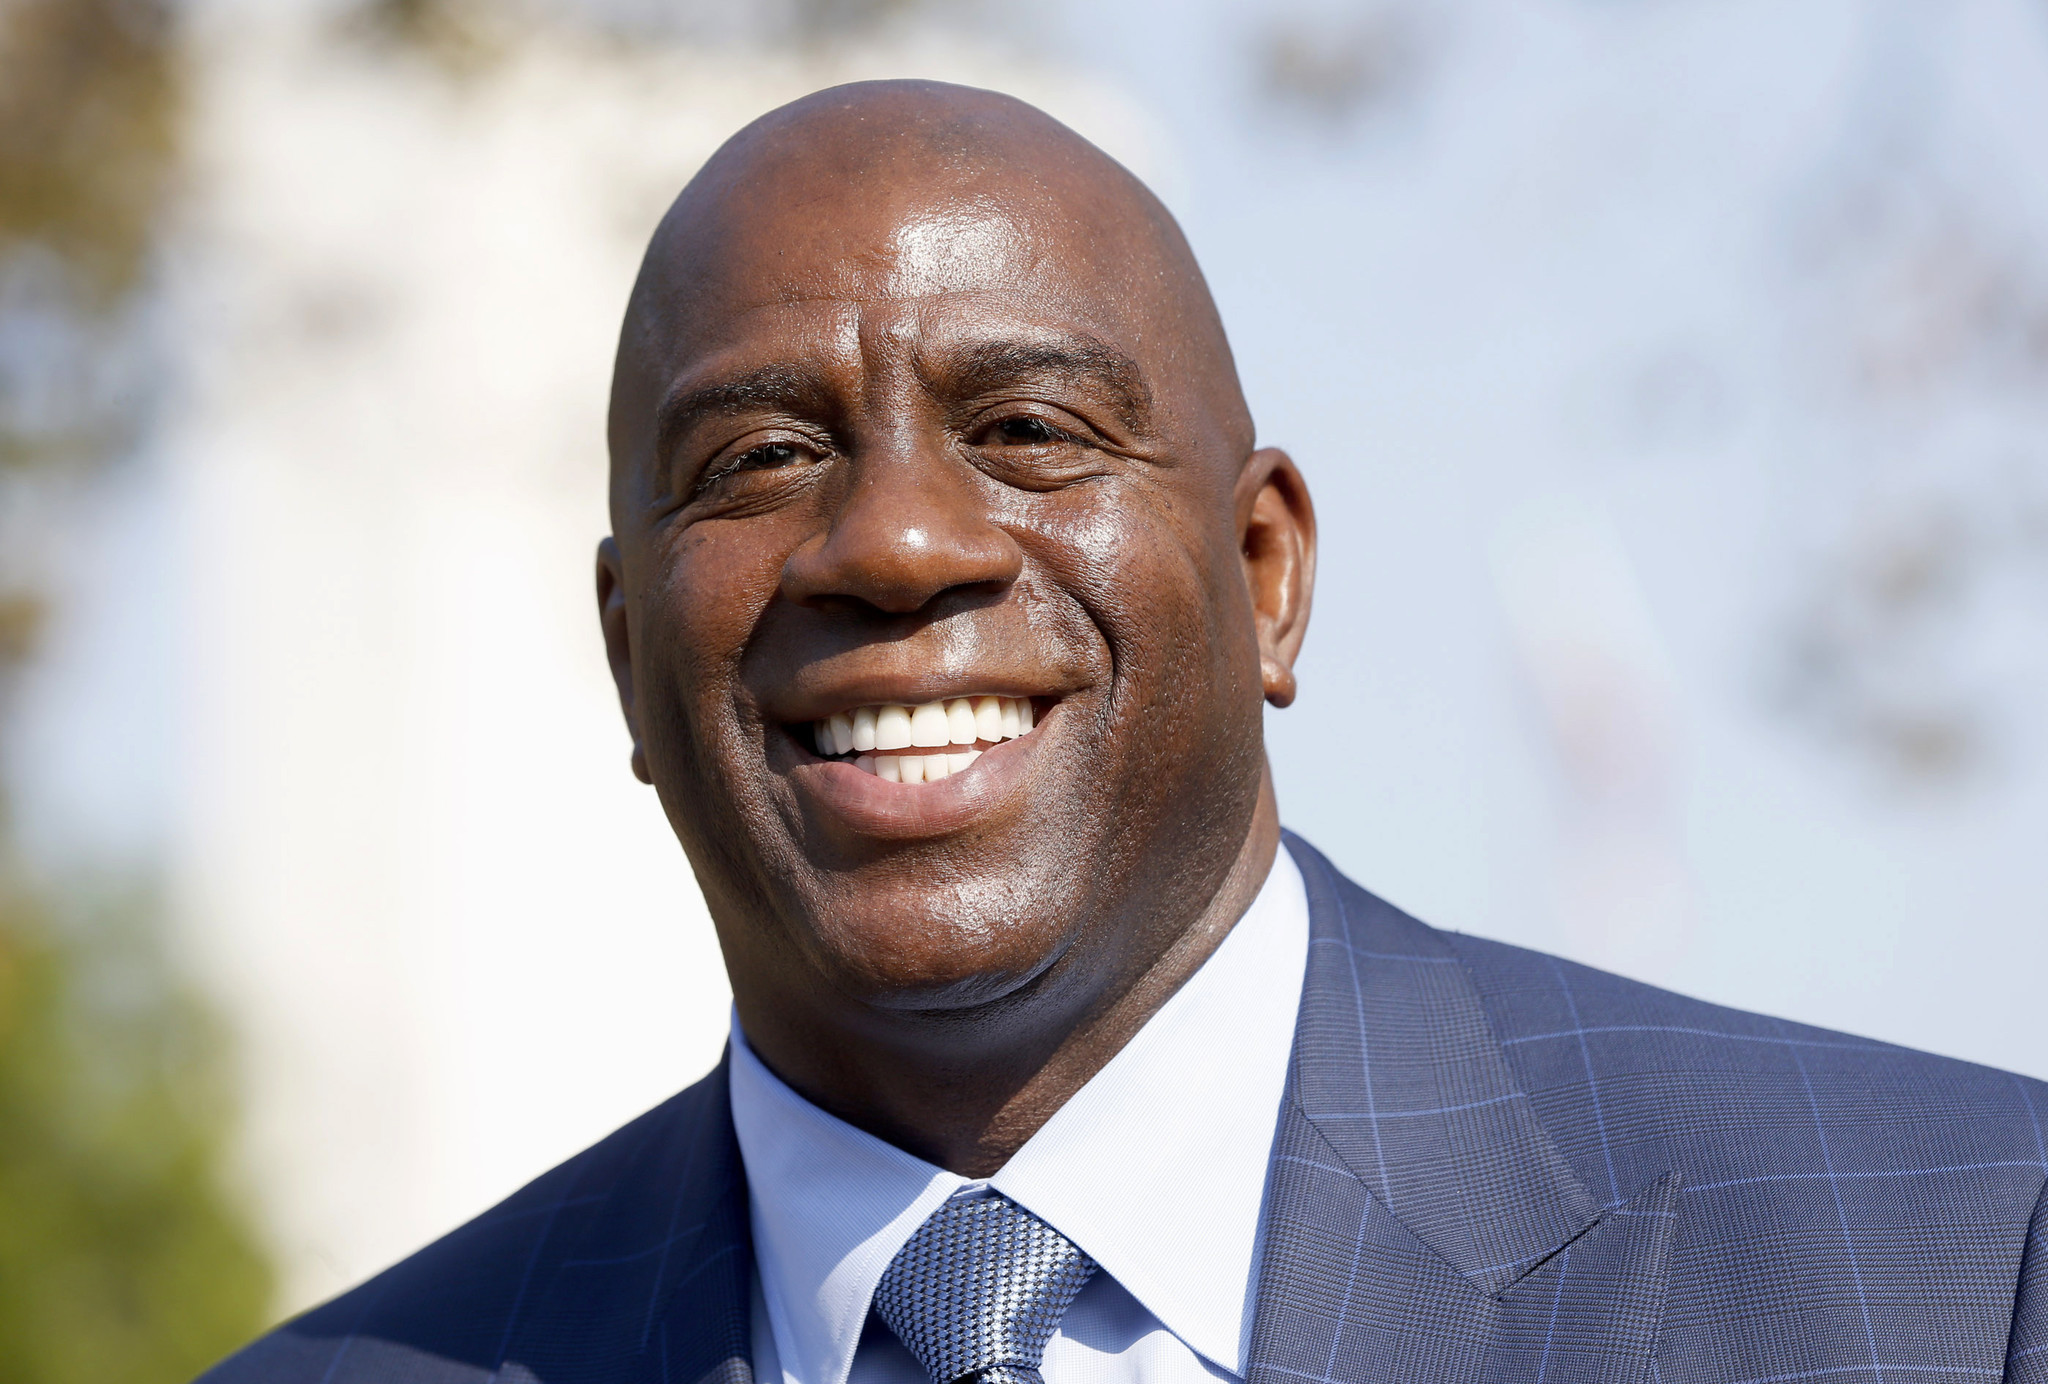 magic johnson vs michael jordanmagic johnson foundation, magic johnson stats, magic johnson height, magic johnson 2016, magic johnson kobe bryant, magic johnson twitter, magic johnson instagram, magic johnson vs michael jordan, magic johnson career stats, magic johnson 2017, magic johnson south park, magic johnson - the funk, magic johnson nickname, magic johnson lyrics, magic johnson position, magic johnson nba 2k16, magic johnson john boyega, magic johnson rhcp tab, magic johnson career mix hd, magic johnson john travolta